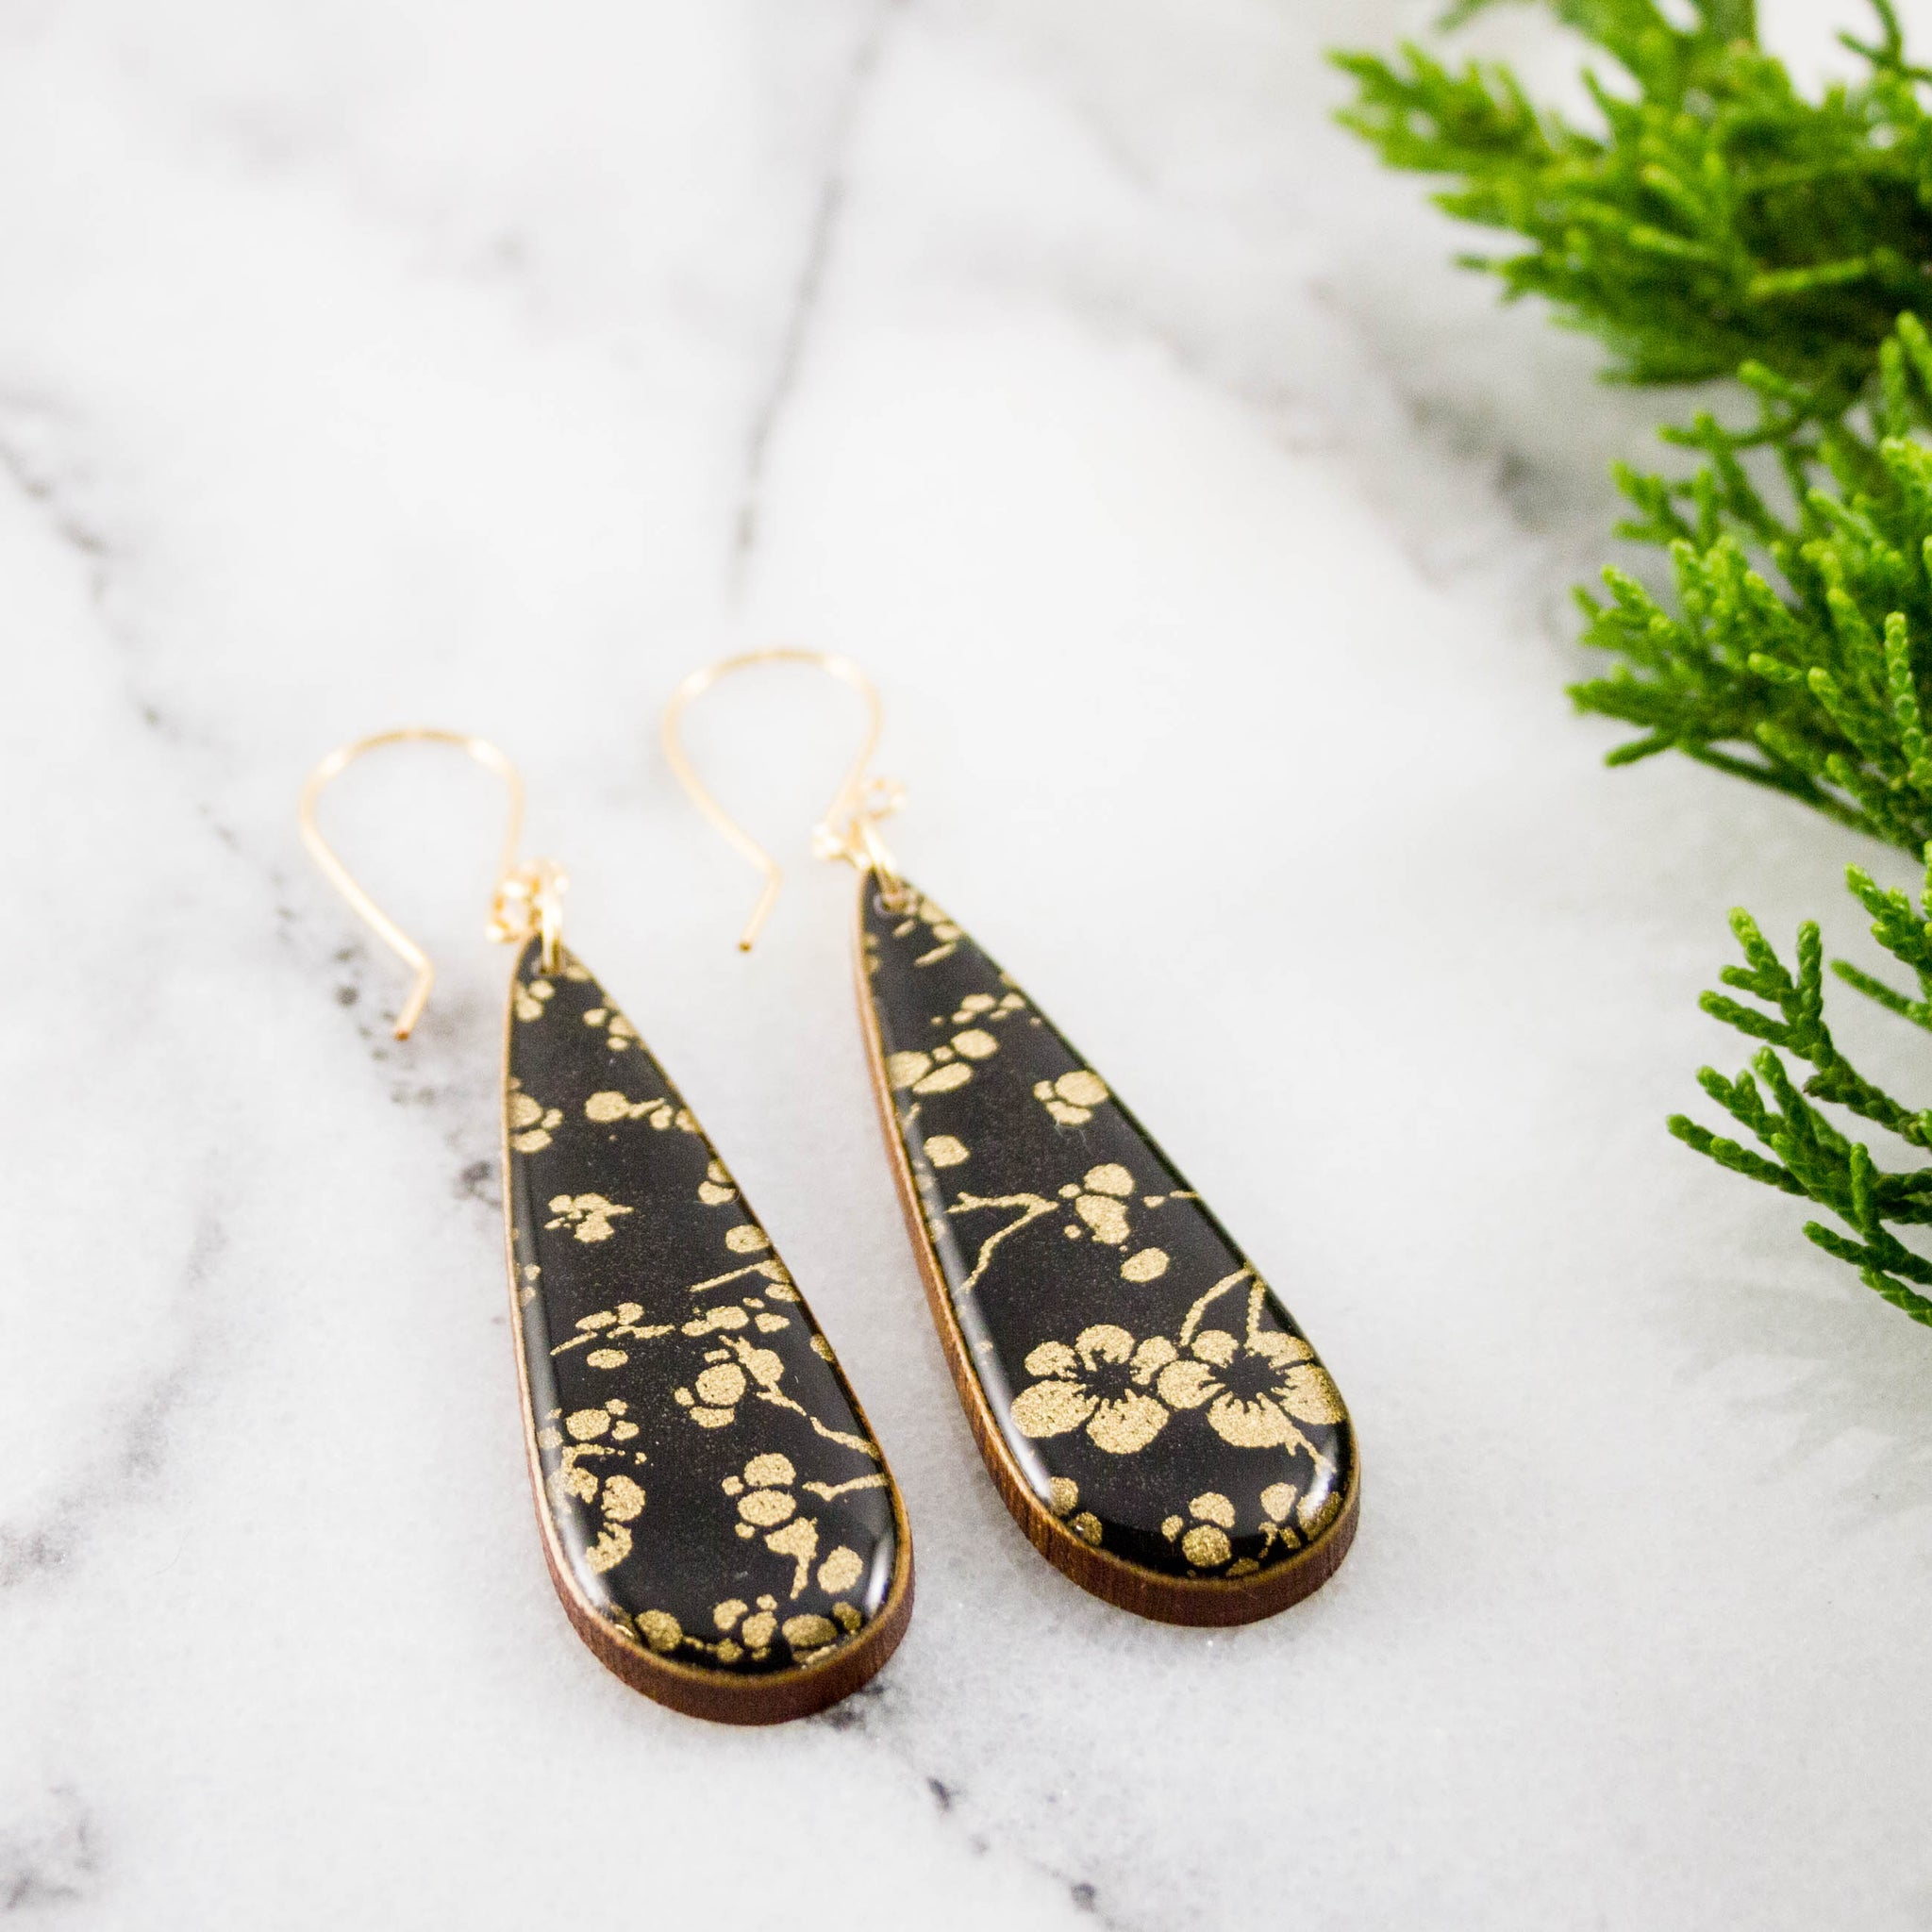 Black + Gold Cherry Blossom Teardrop Earrings